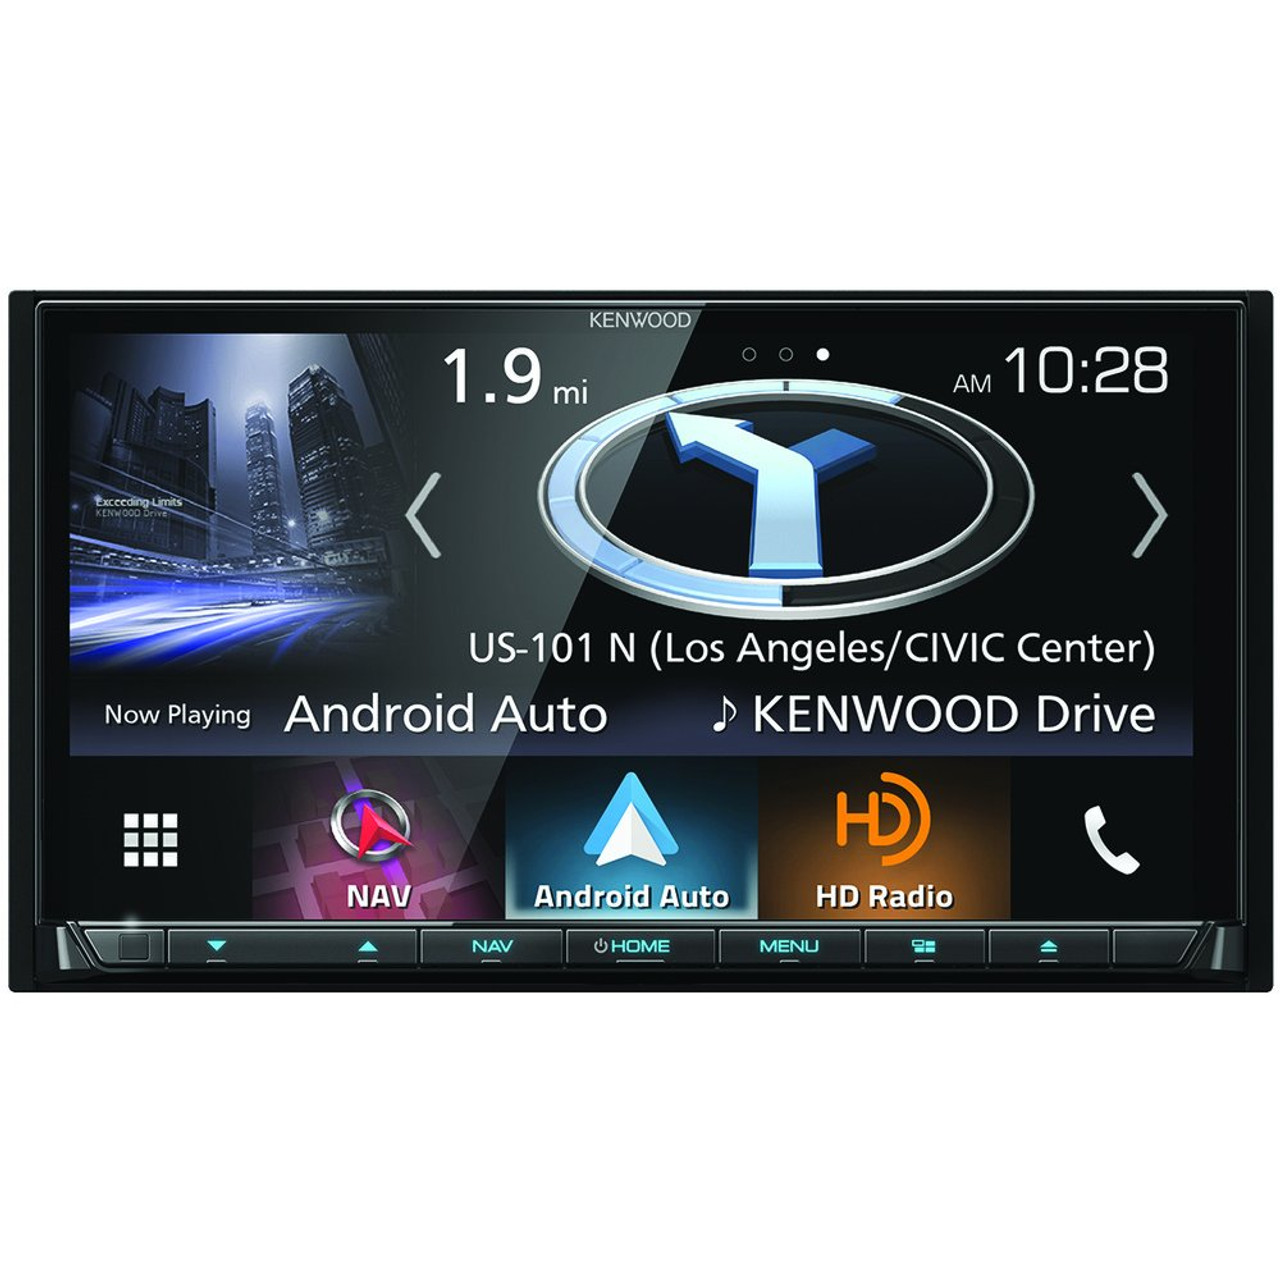 Kenwood DNX874S Apple CarPlay and Android Auto In-Dash Navigation Receiver